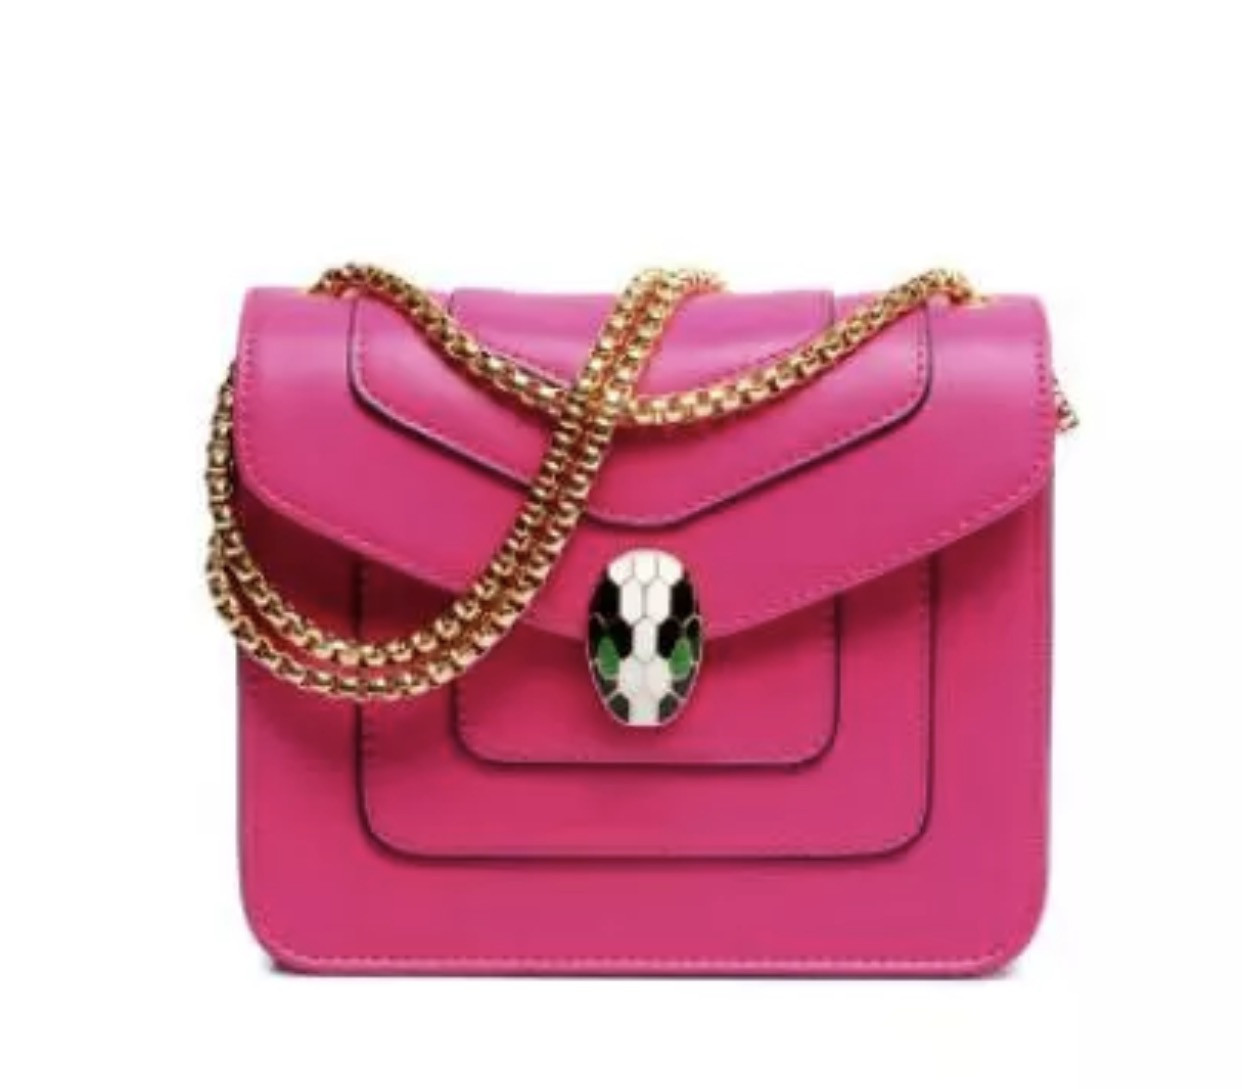 Pink Crossbody Bag Intuition LA.png